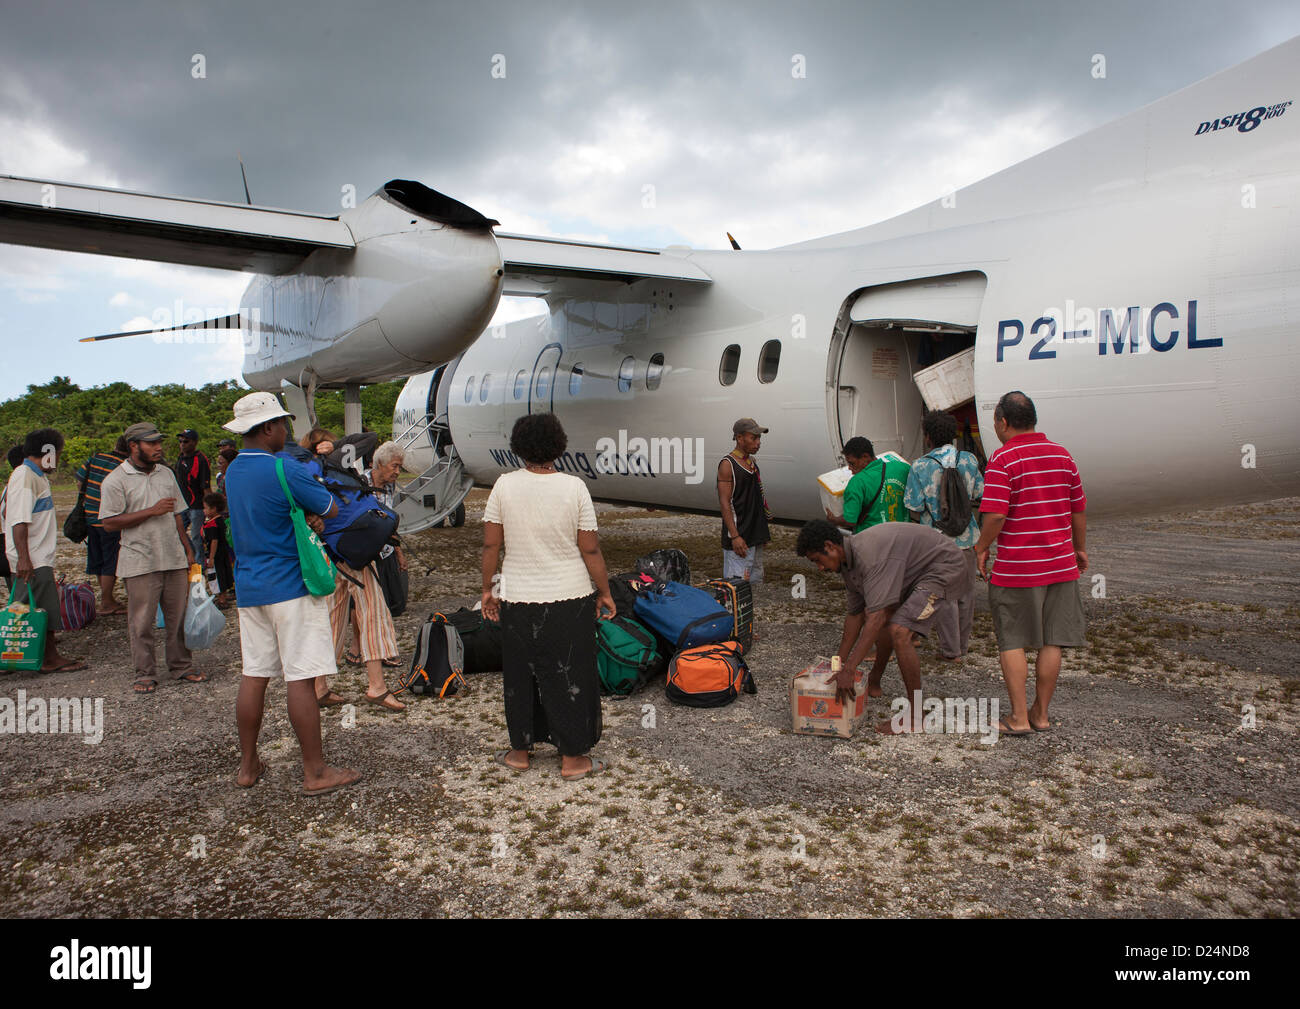 Plane Arriving In Airport, Trobriand Island, Papua New Guinea - Stock Image